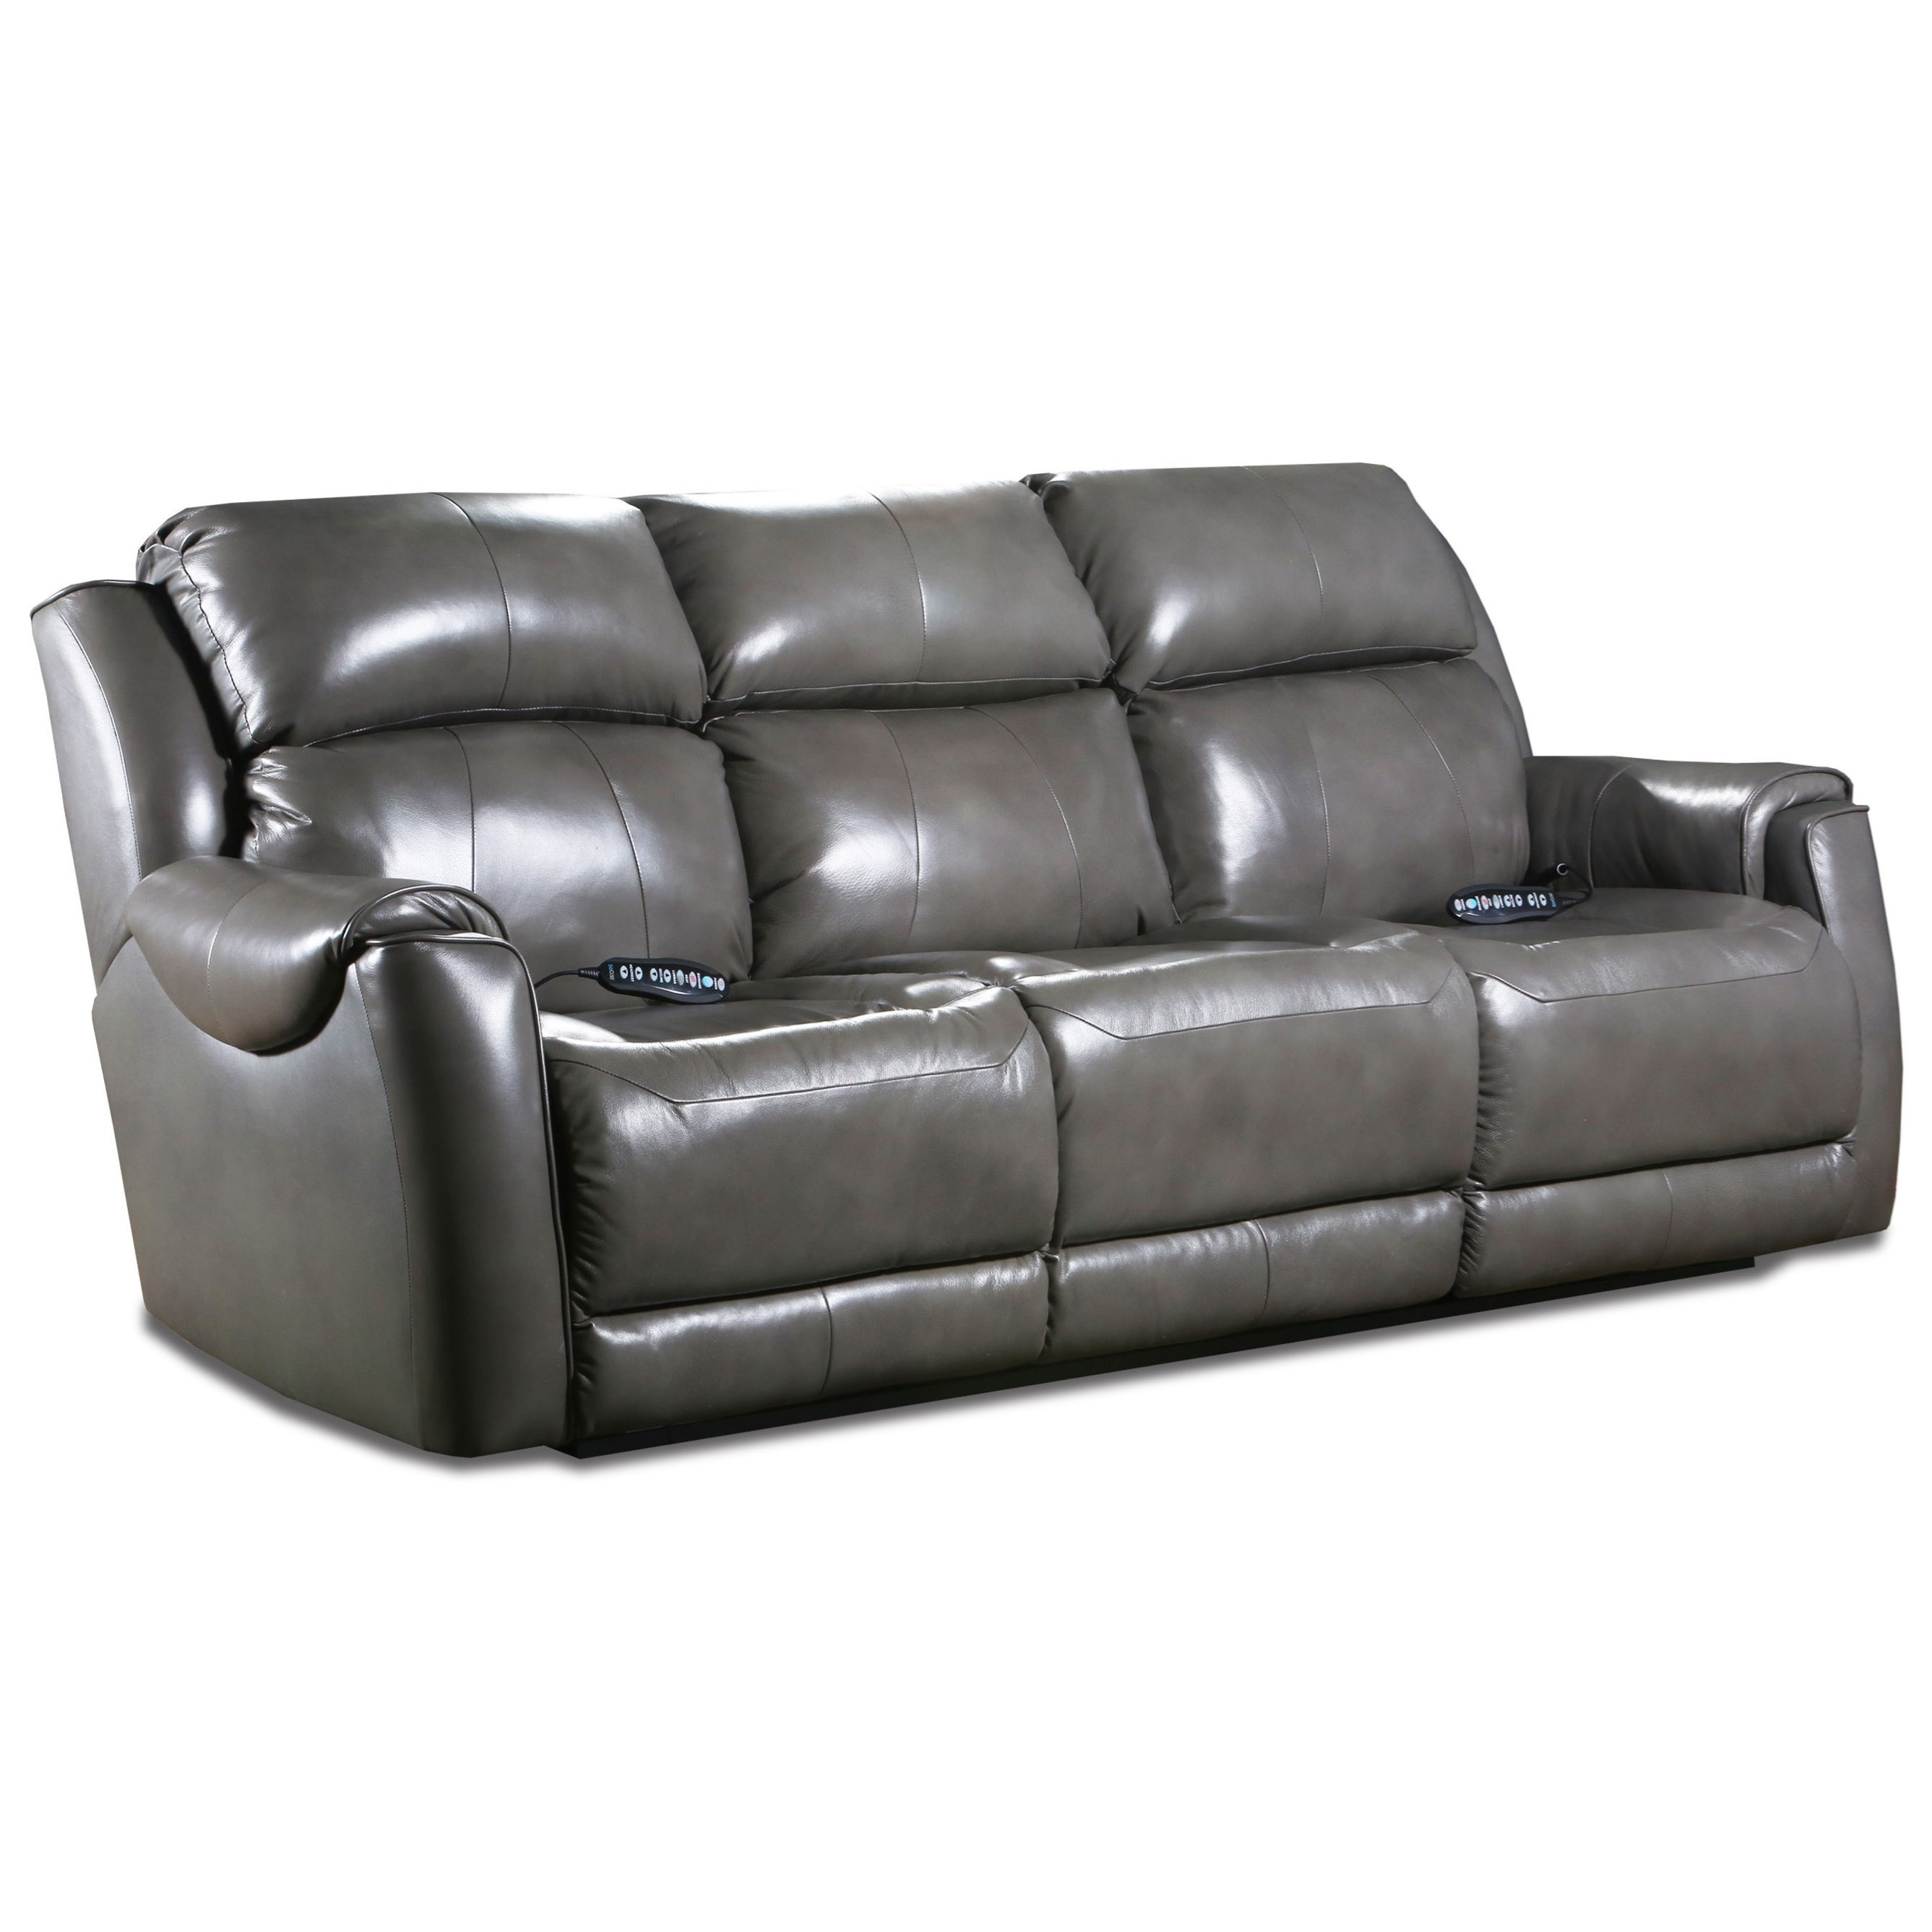 Safe Bet Power Double Reclining Sofa by Southern Motion at Sparks HomeStore